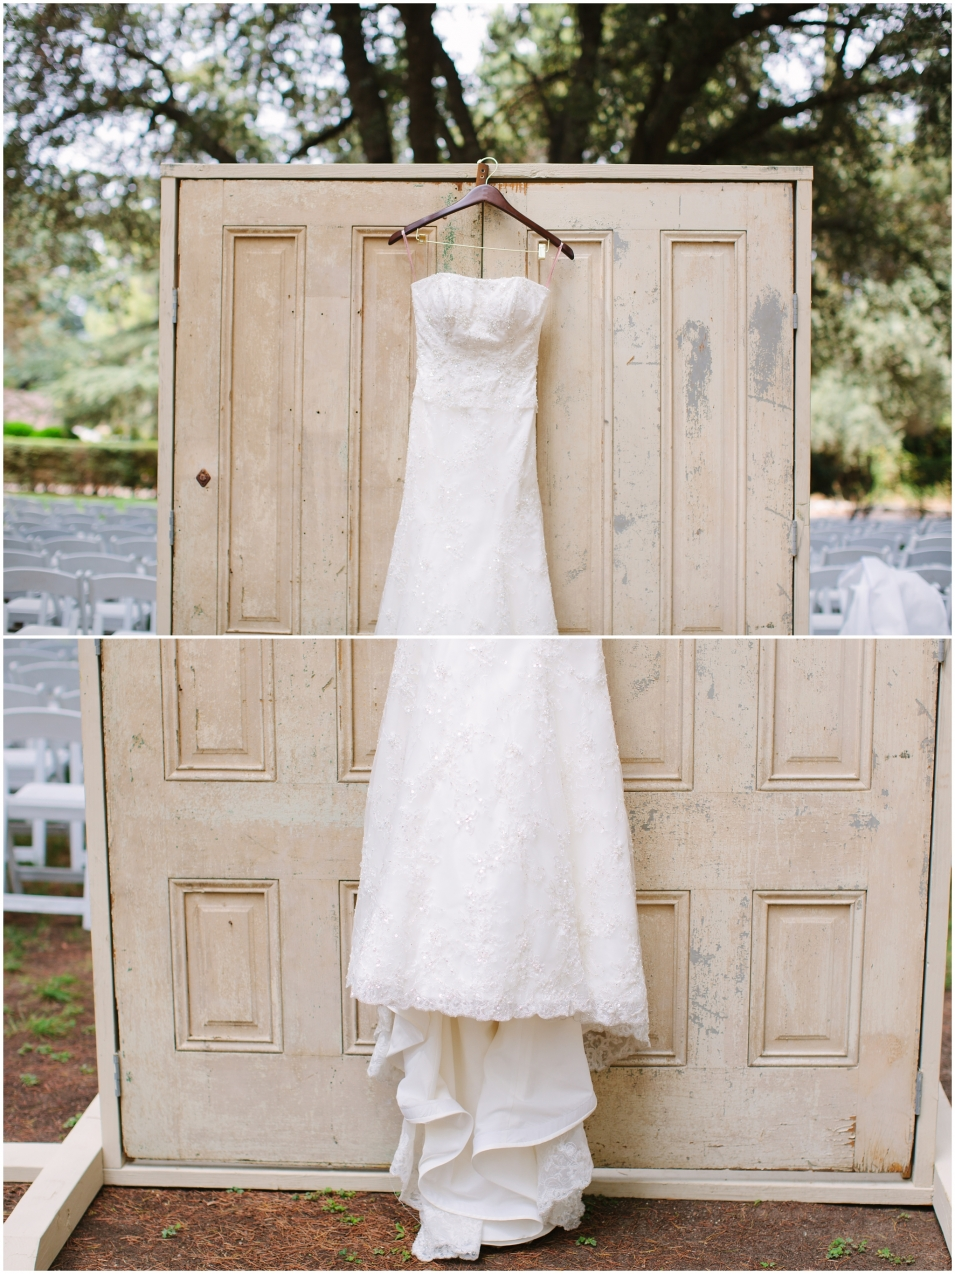 Highland Springs Resort Wedding - Cherry Valley, CA - http://brittneyhannonphotography.com